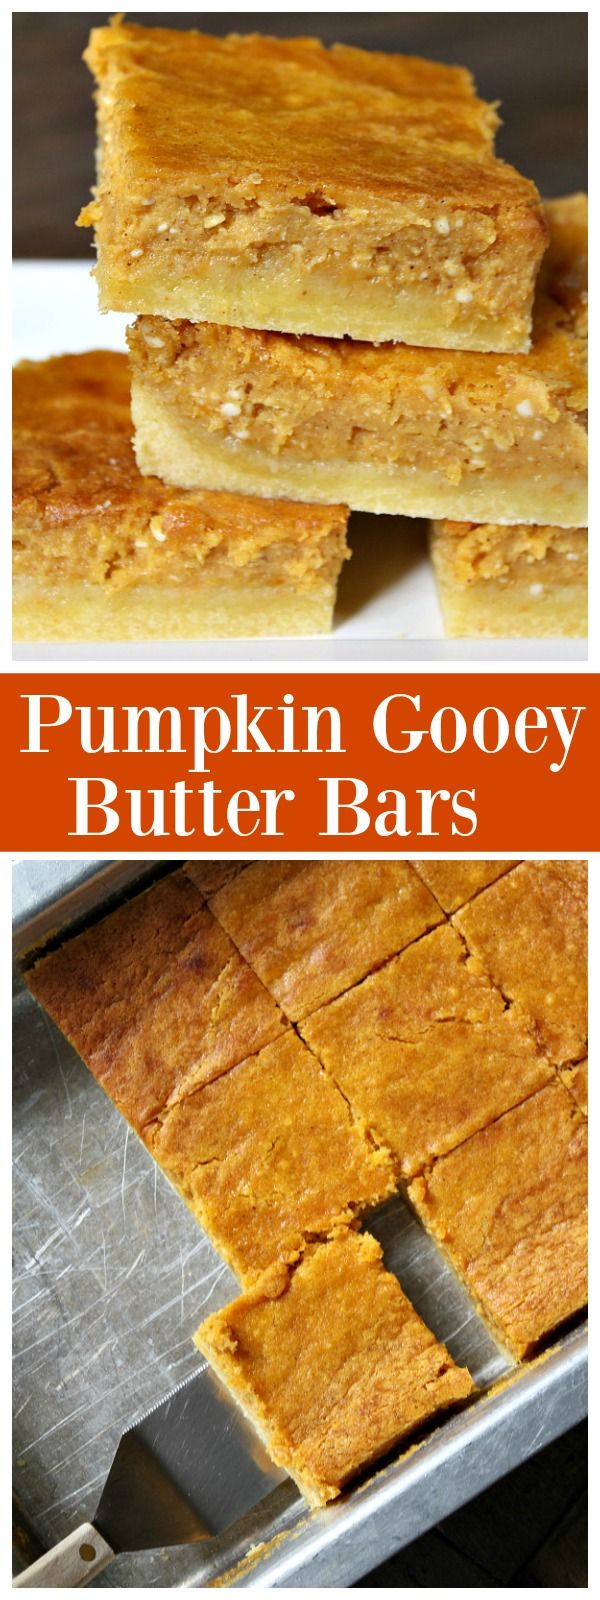 Pumpkin Gooey Butter Bars recipe - from RecipeBoy.com - an easy recipe for these delicious pumpkin bars.  Great Thanksgiving dessert recipe.